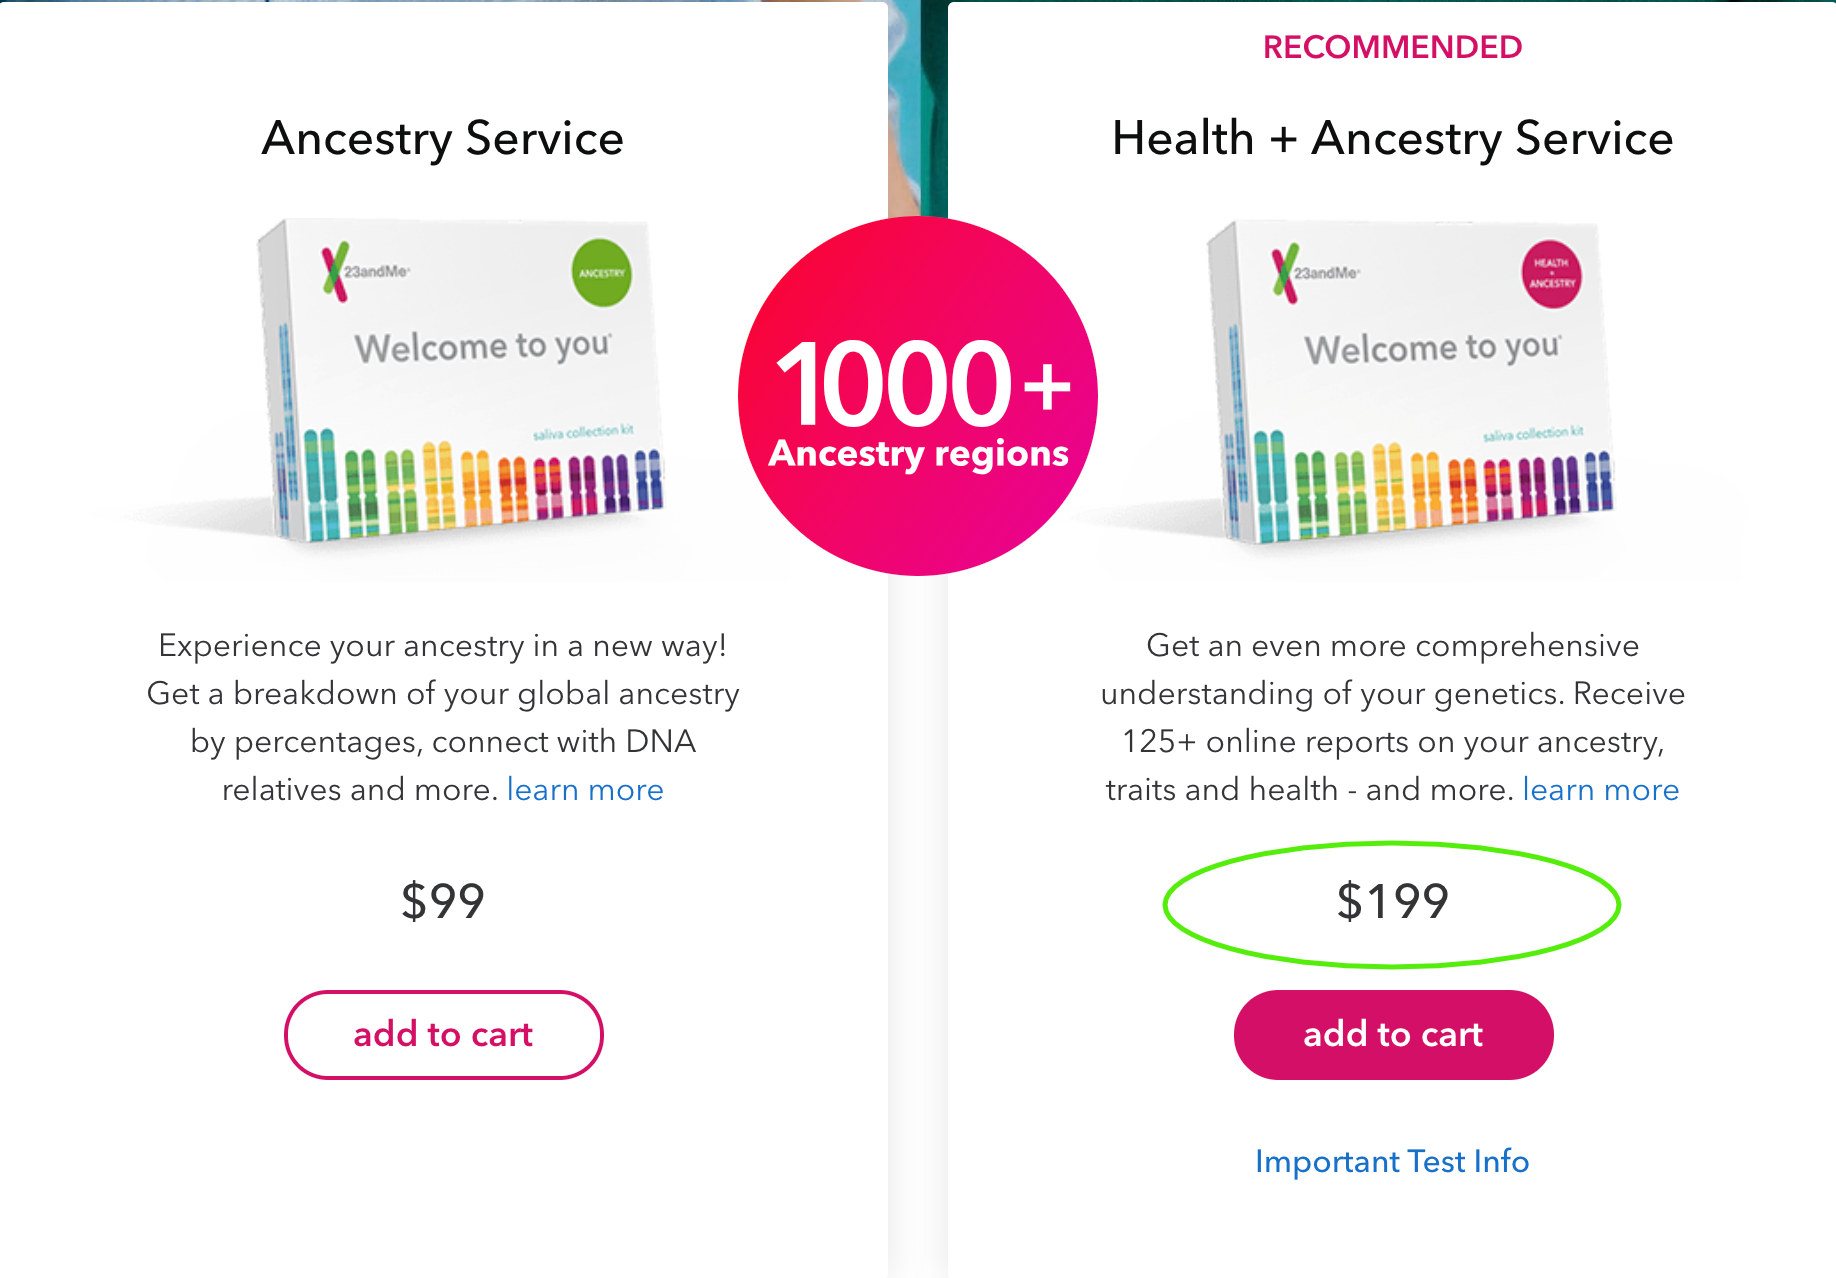 screenshot-www.23andme.com-2019.02.16-08-43-38.png